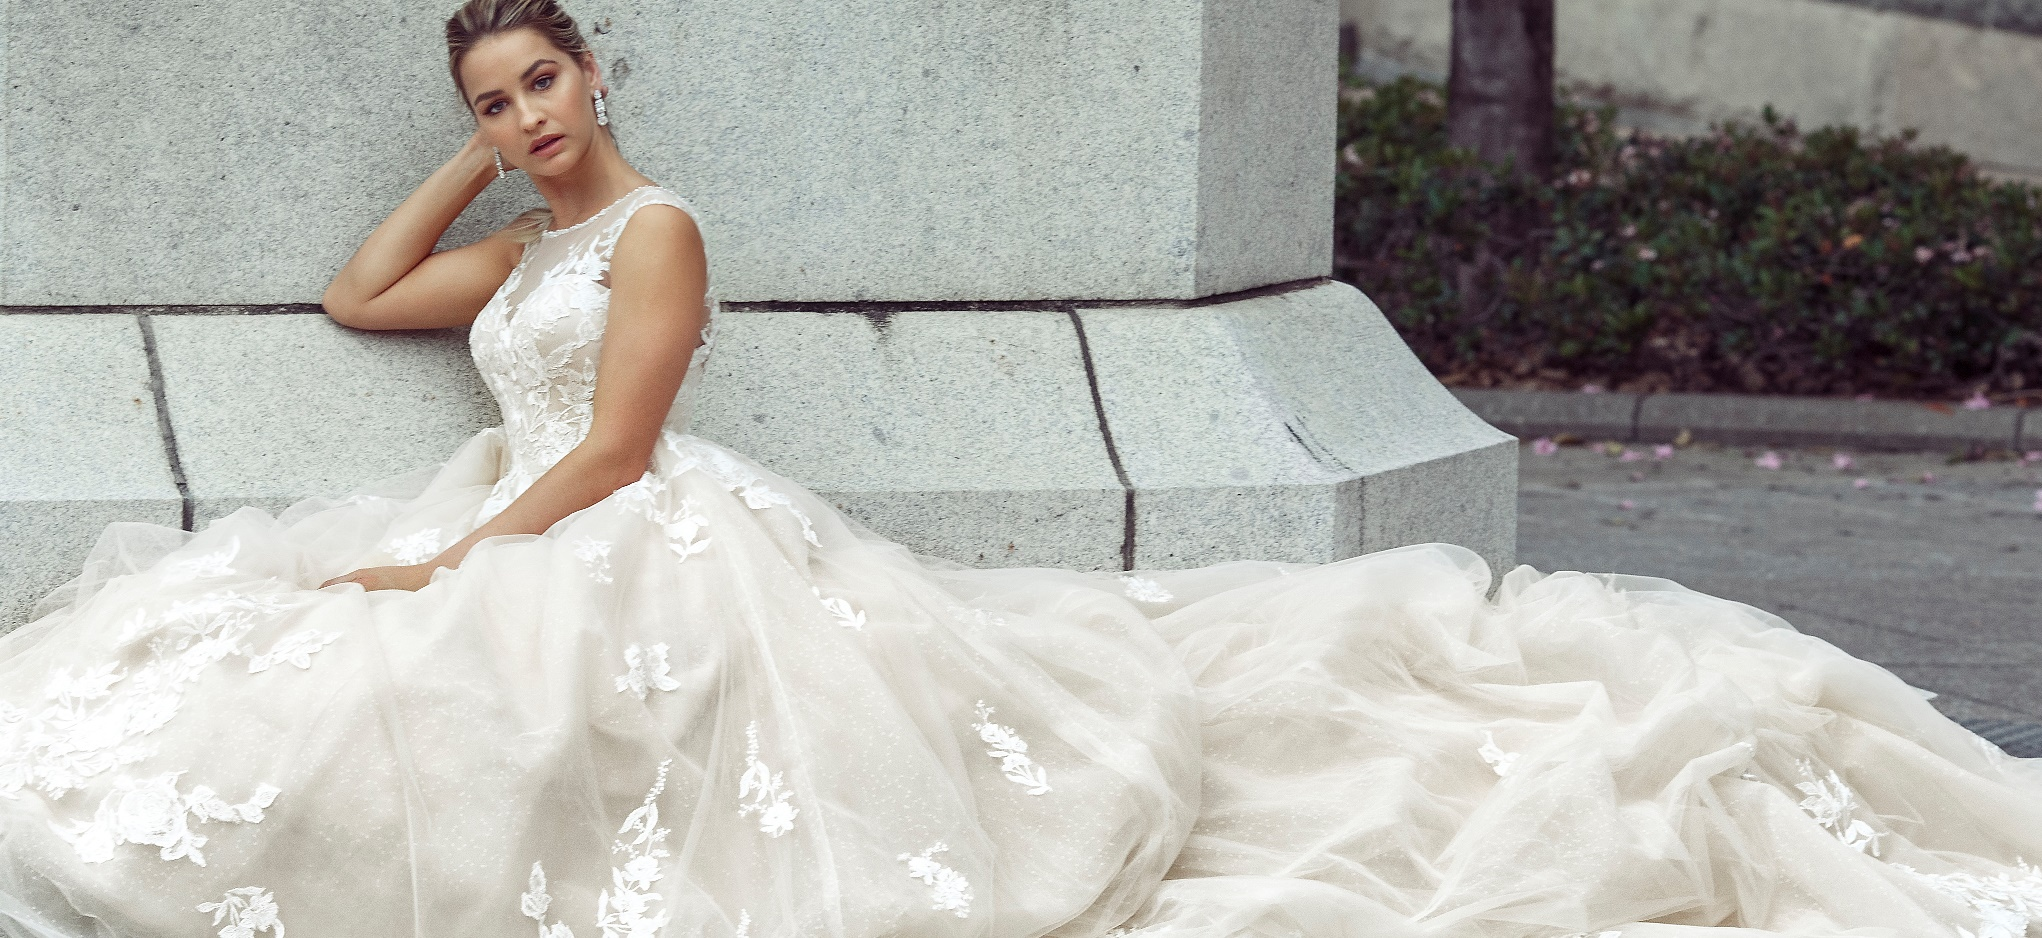 Designer Wedding Dresses And Formal Bridal Gowns By Mia Solano